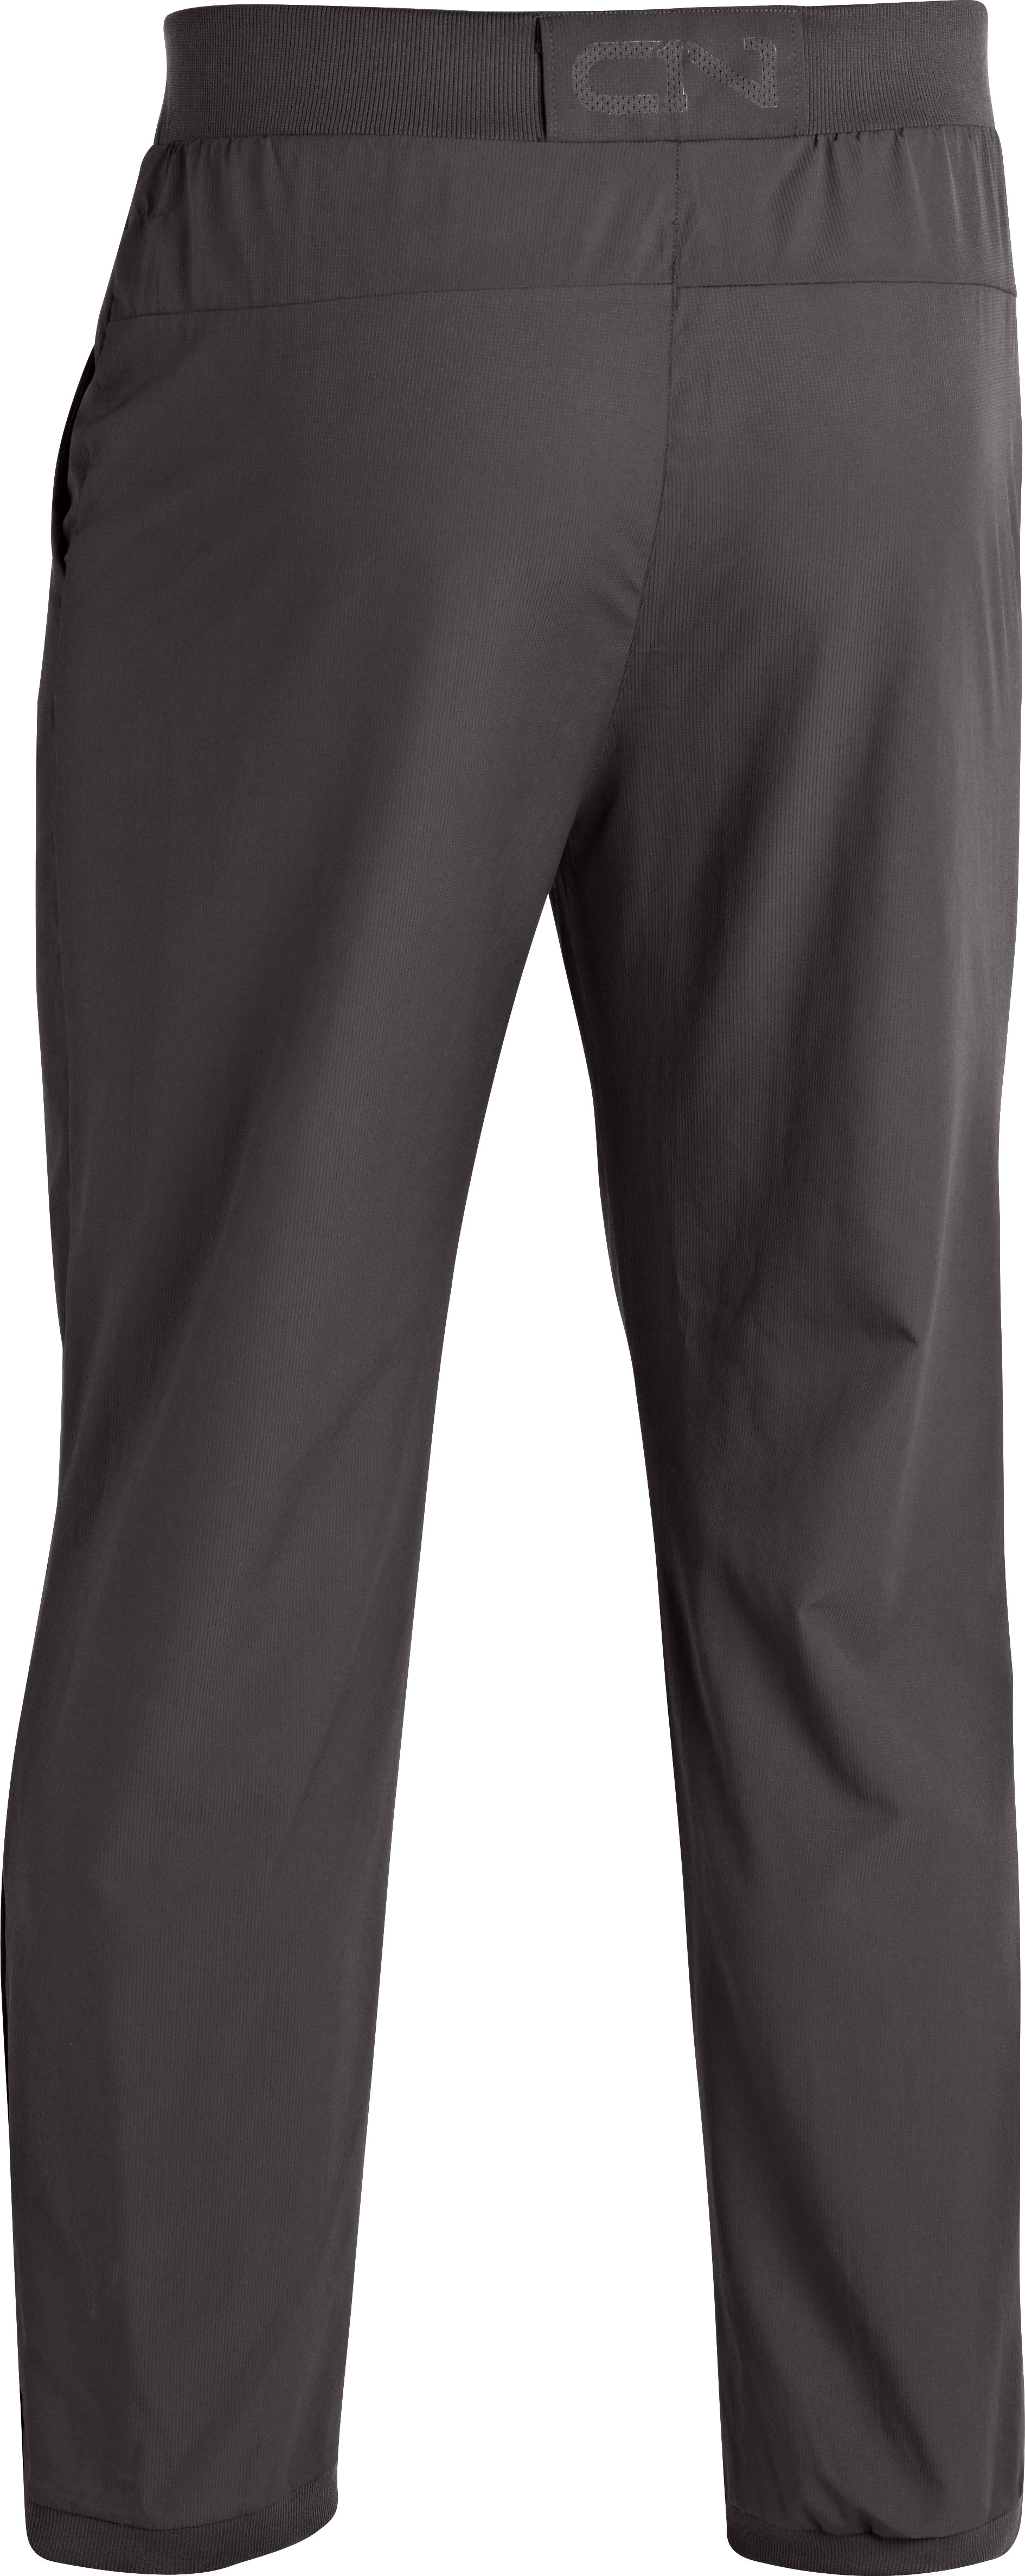 Men's C1N A.K.A. Warm-Up Pants, Charcoal